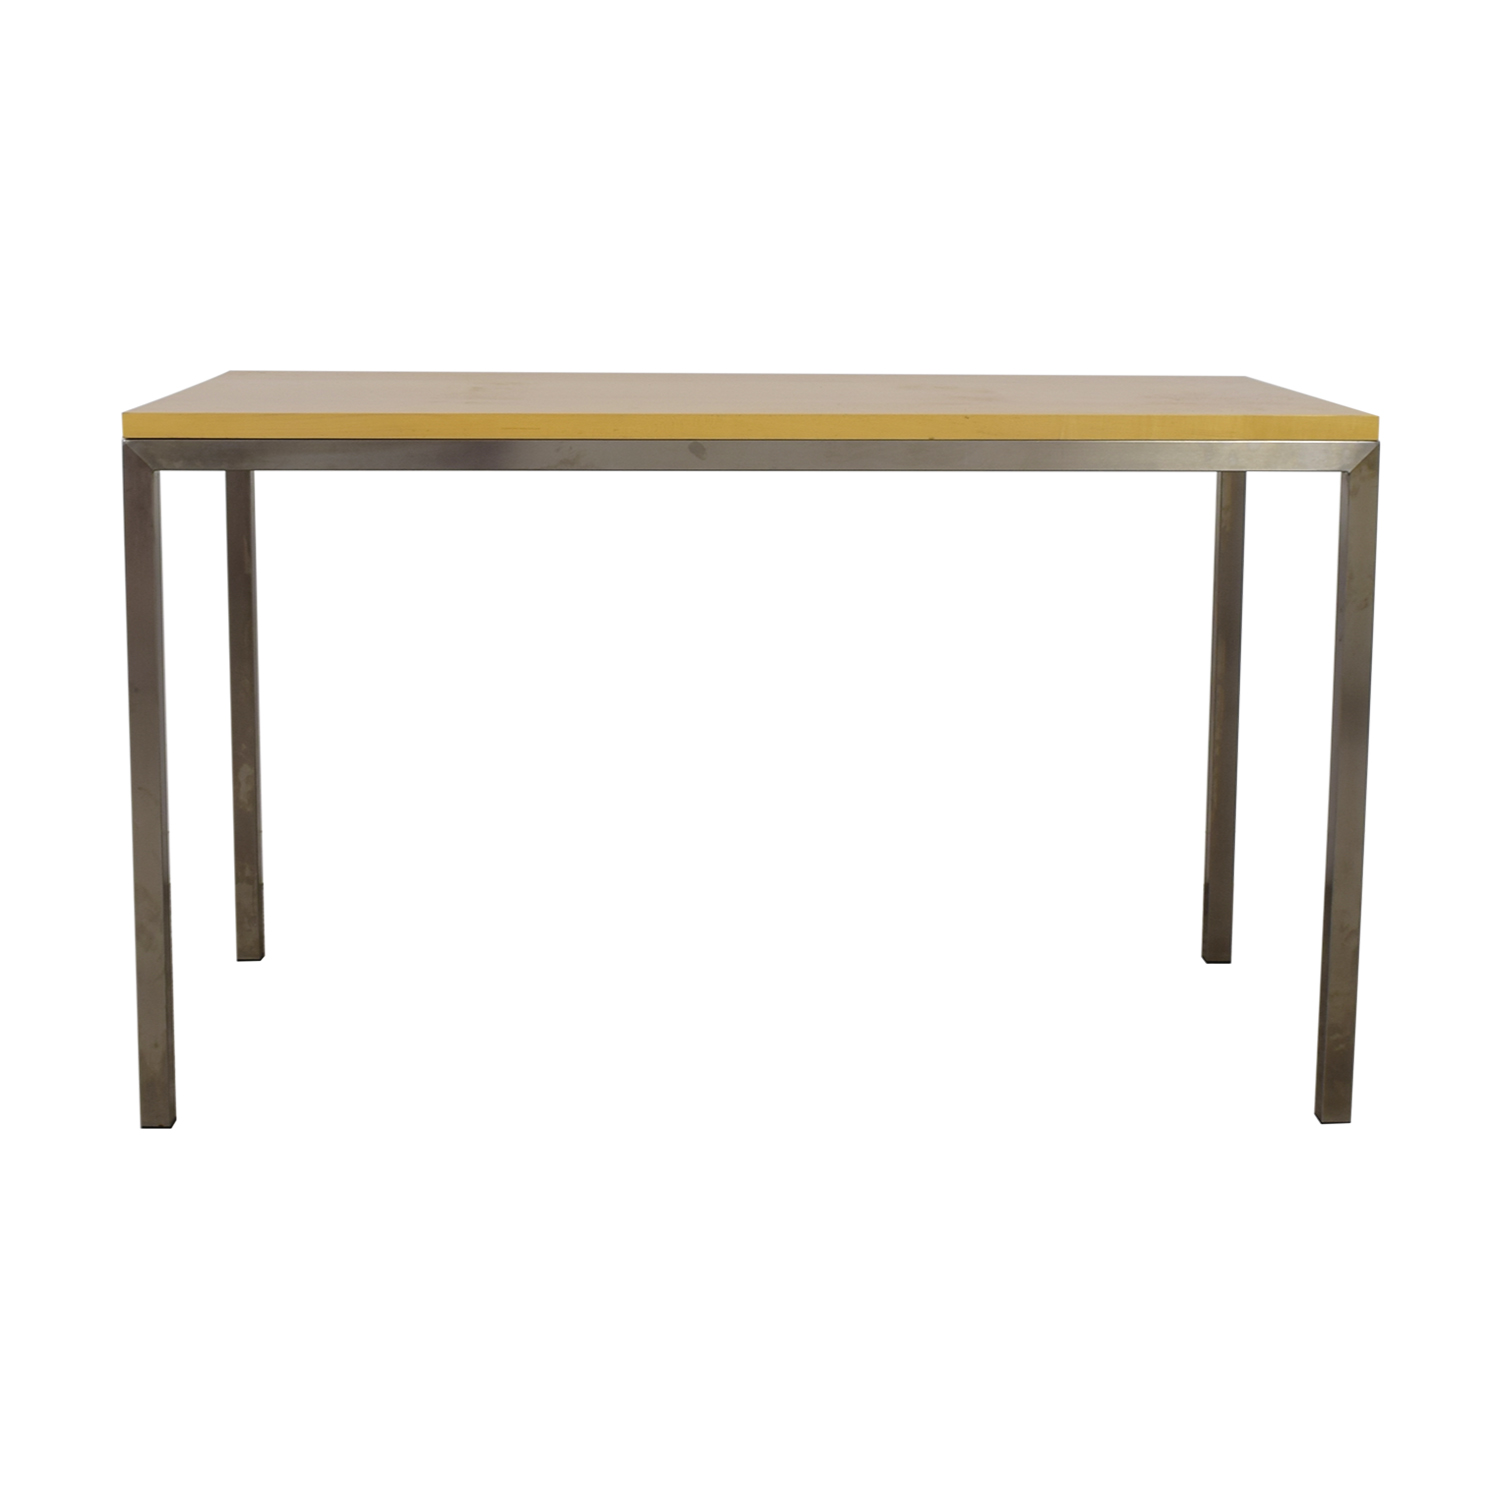 Room & Board Portia Maple Top and Stainless Steel Base Table / Tables